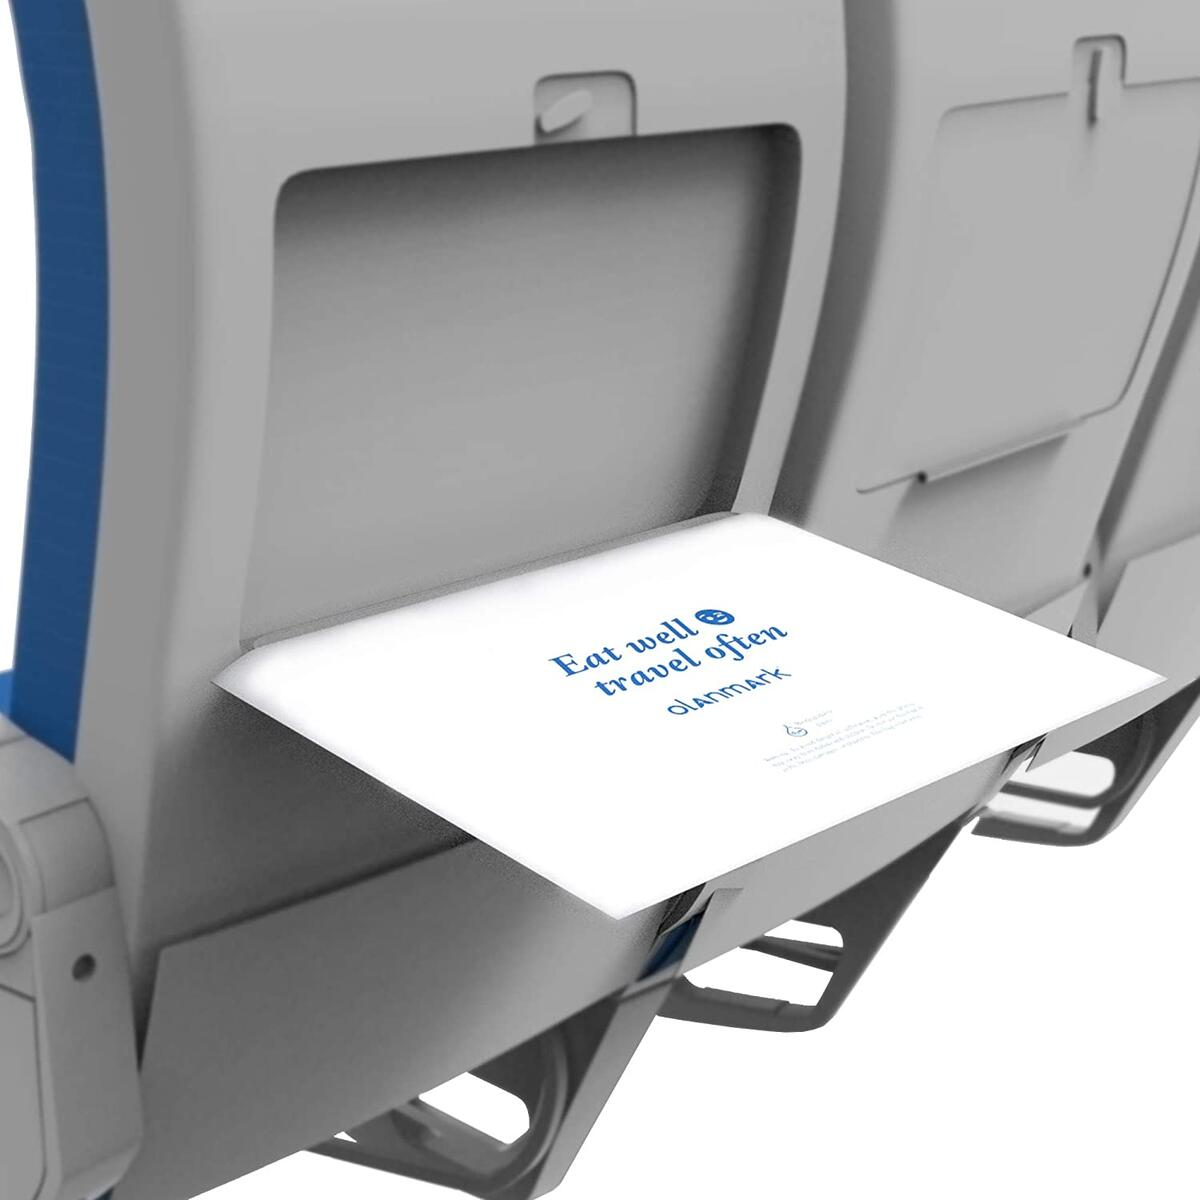 10 Pack Disposable Airplane Tray Covers Set - Each Airplane Travel Table Cover Is Individually Packed